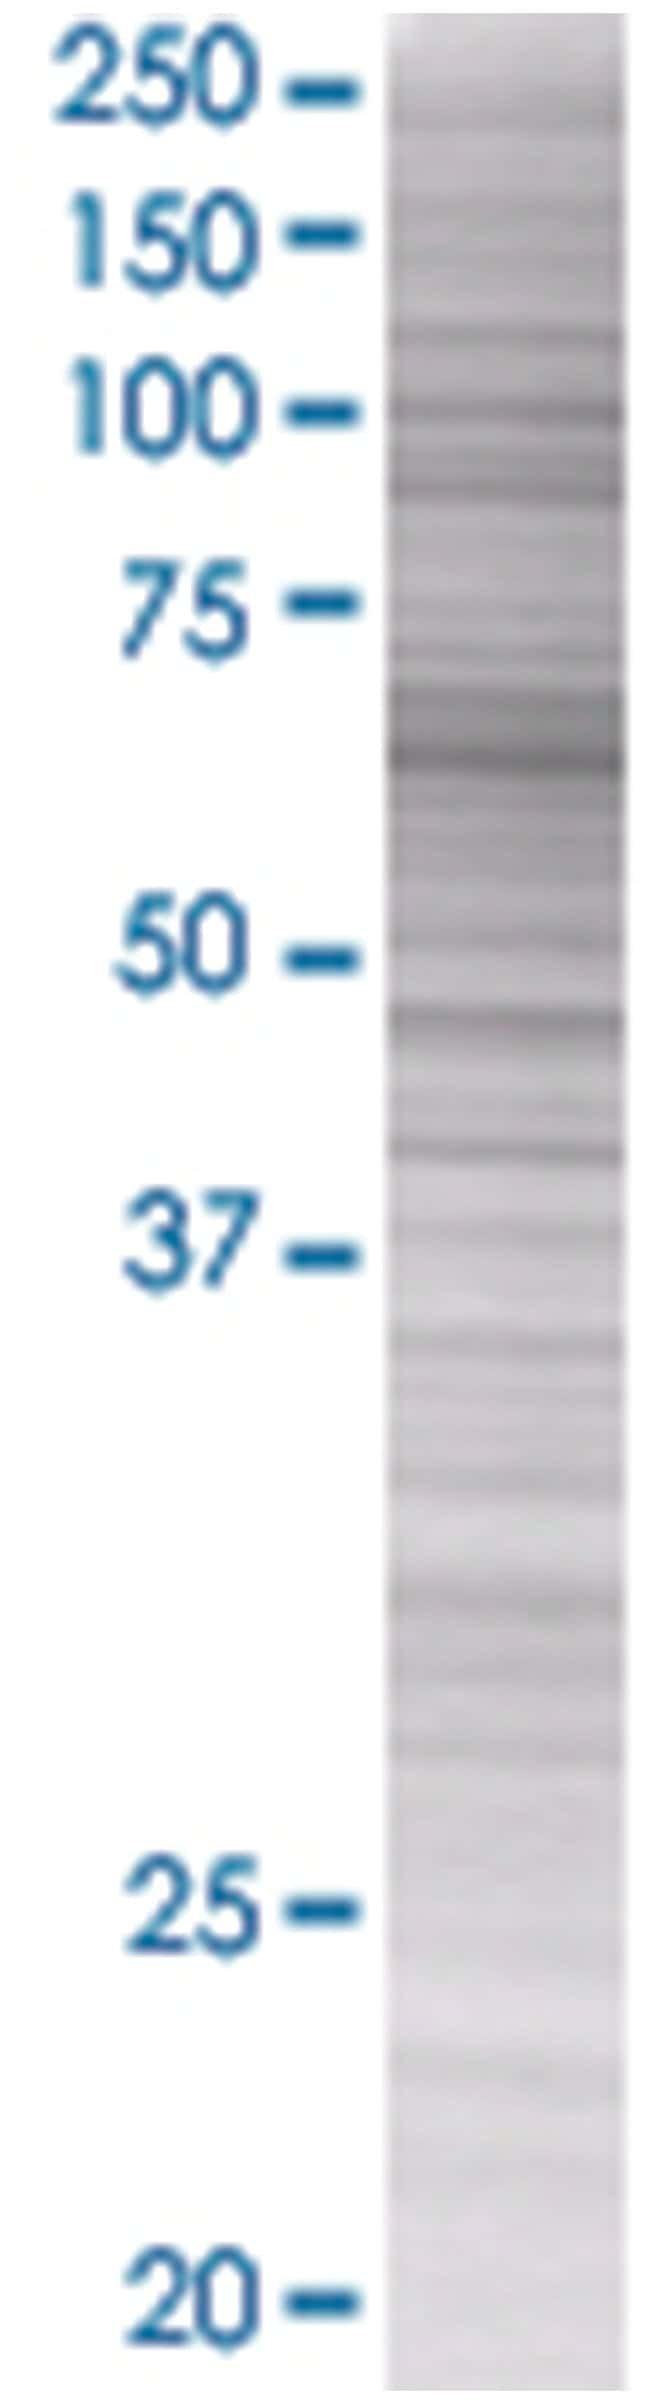 FANCG 293T Cell Overexpression Lysate (Denatured), Abnova 100µL:Life